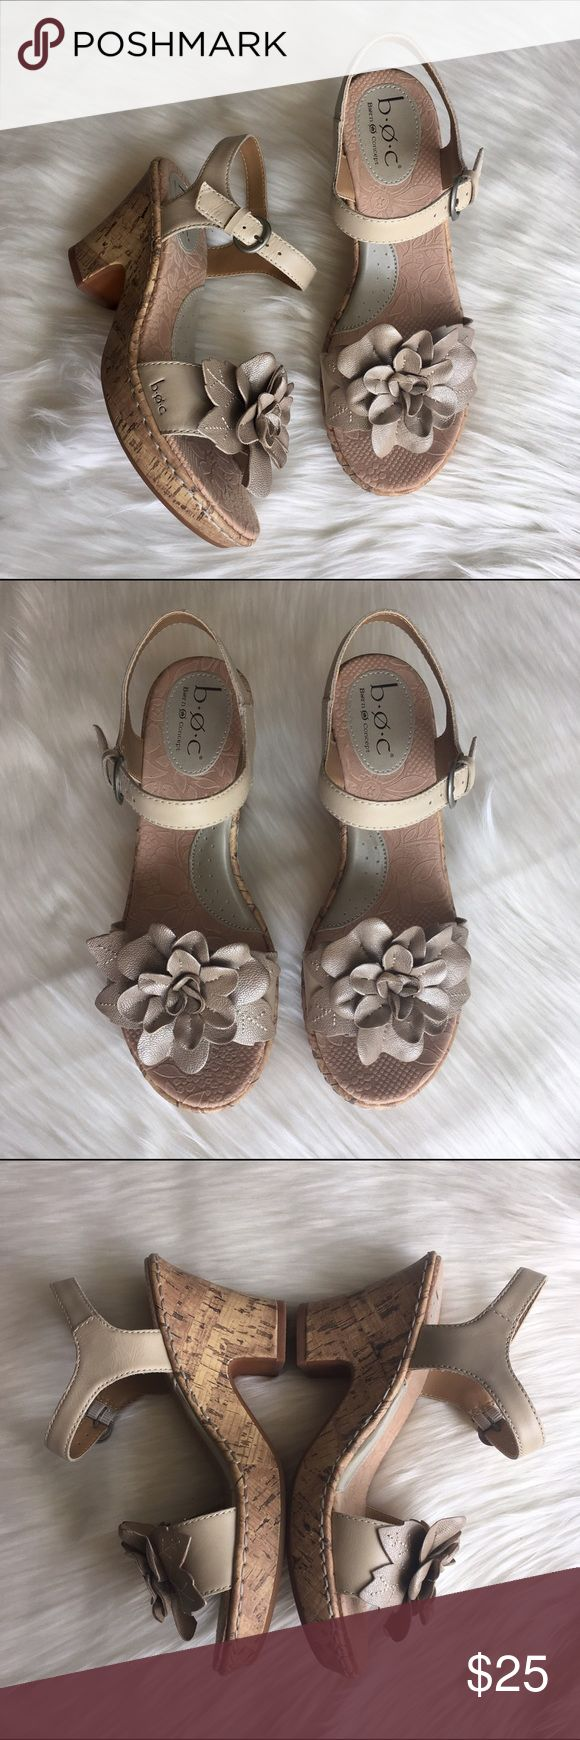 """boc Born Concept Flower Heeled Sandals - Sz 7 Adorable floral heeled sandals with ankle strap from boc in like new condition! Leather upper; manmade balance. Platform/heels have a cork appearance. Heel measures about 3.25"""" with 1"""" platform. Comfy enough to wear all day while still looking classy and put together! Questions welcome! Born Shoes Sandals"""